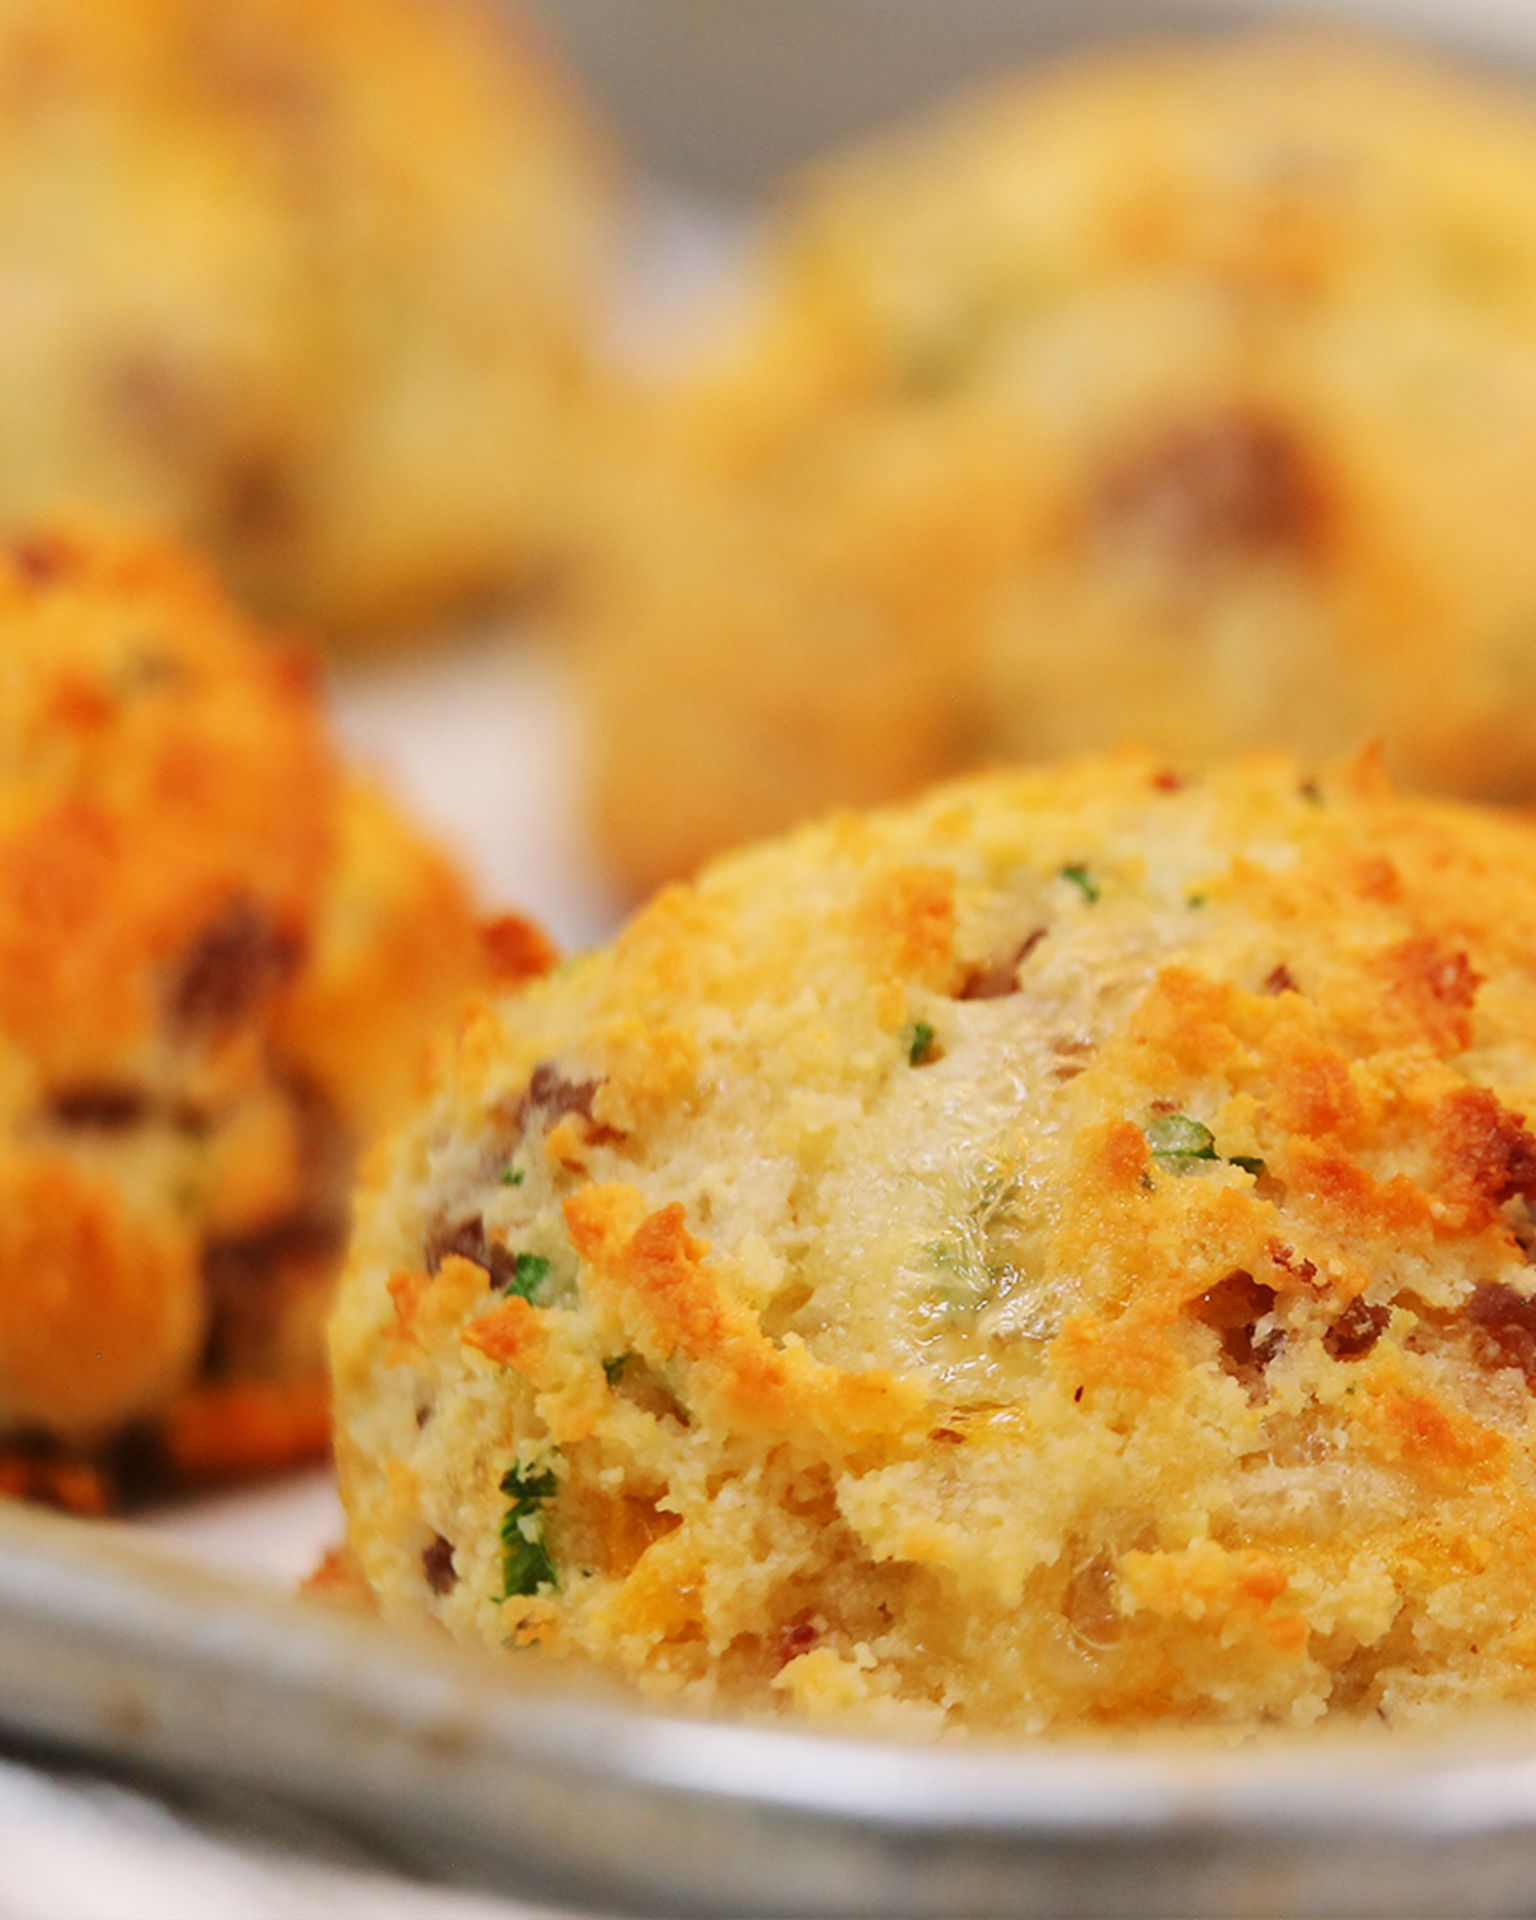 Low Carb Sausage Cheddar Chive Breakfast Biscuits Recipe